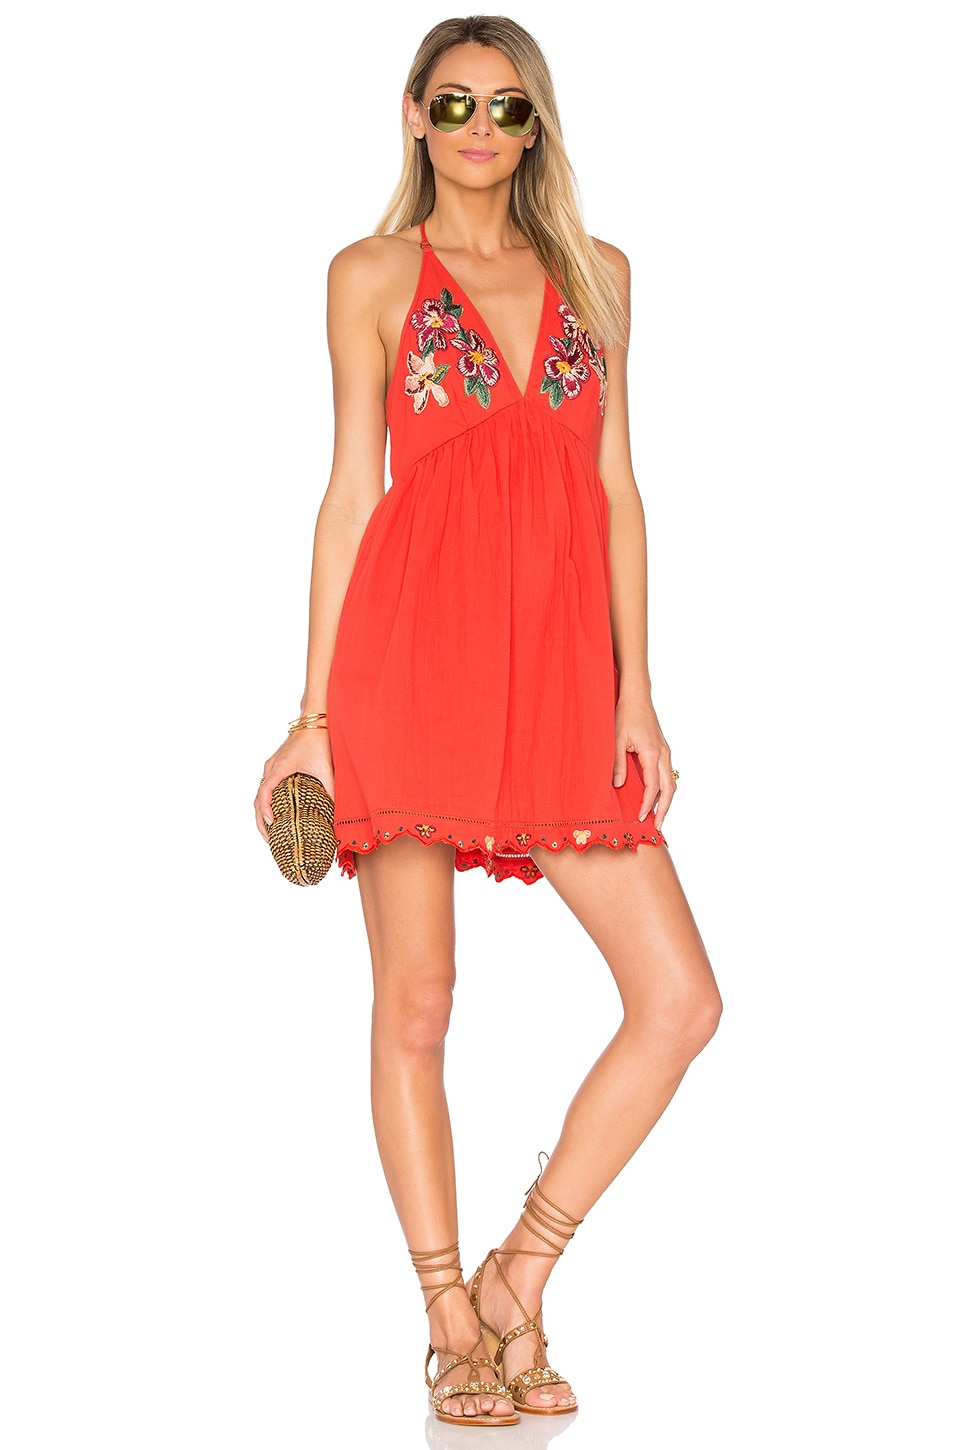 Free People Love and Flowers Dress in Coral